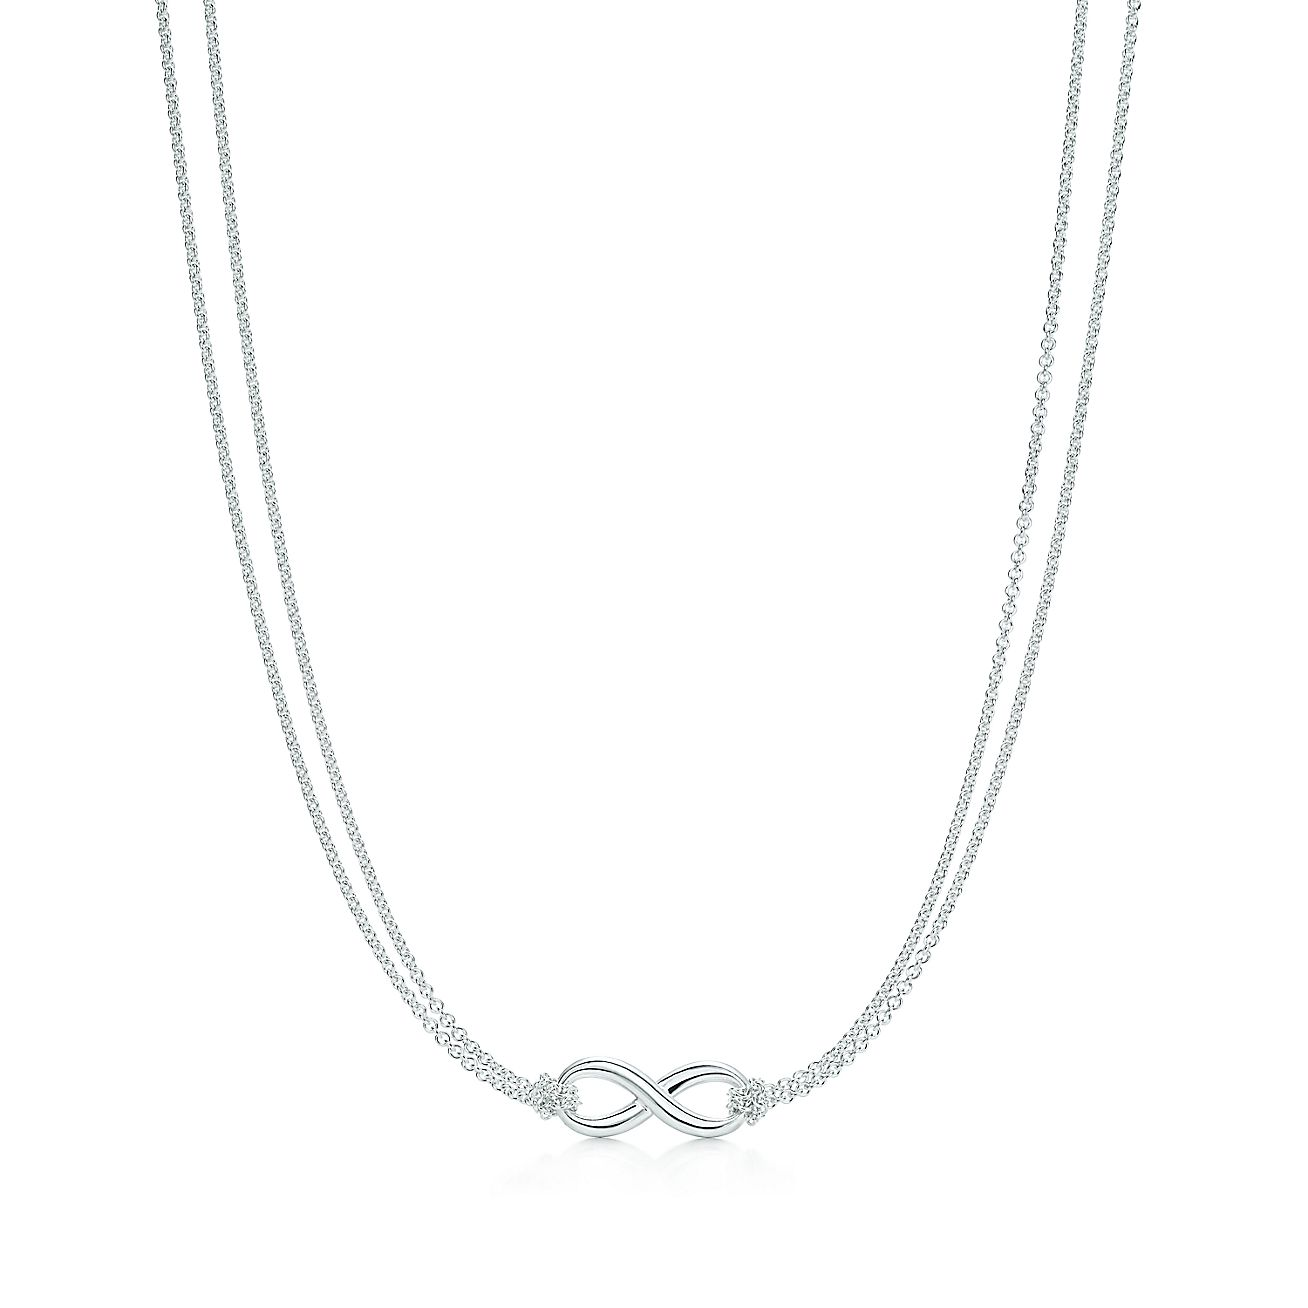 adjustable necklace super alex sign ani detail and infinity